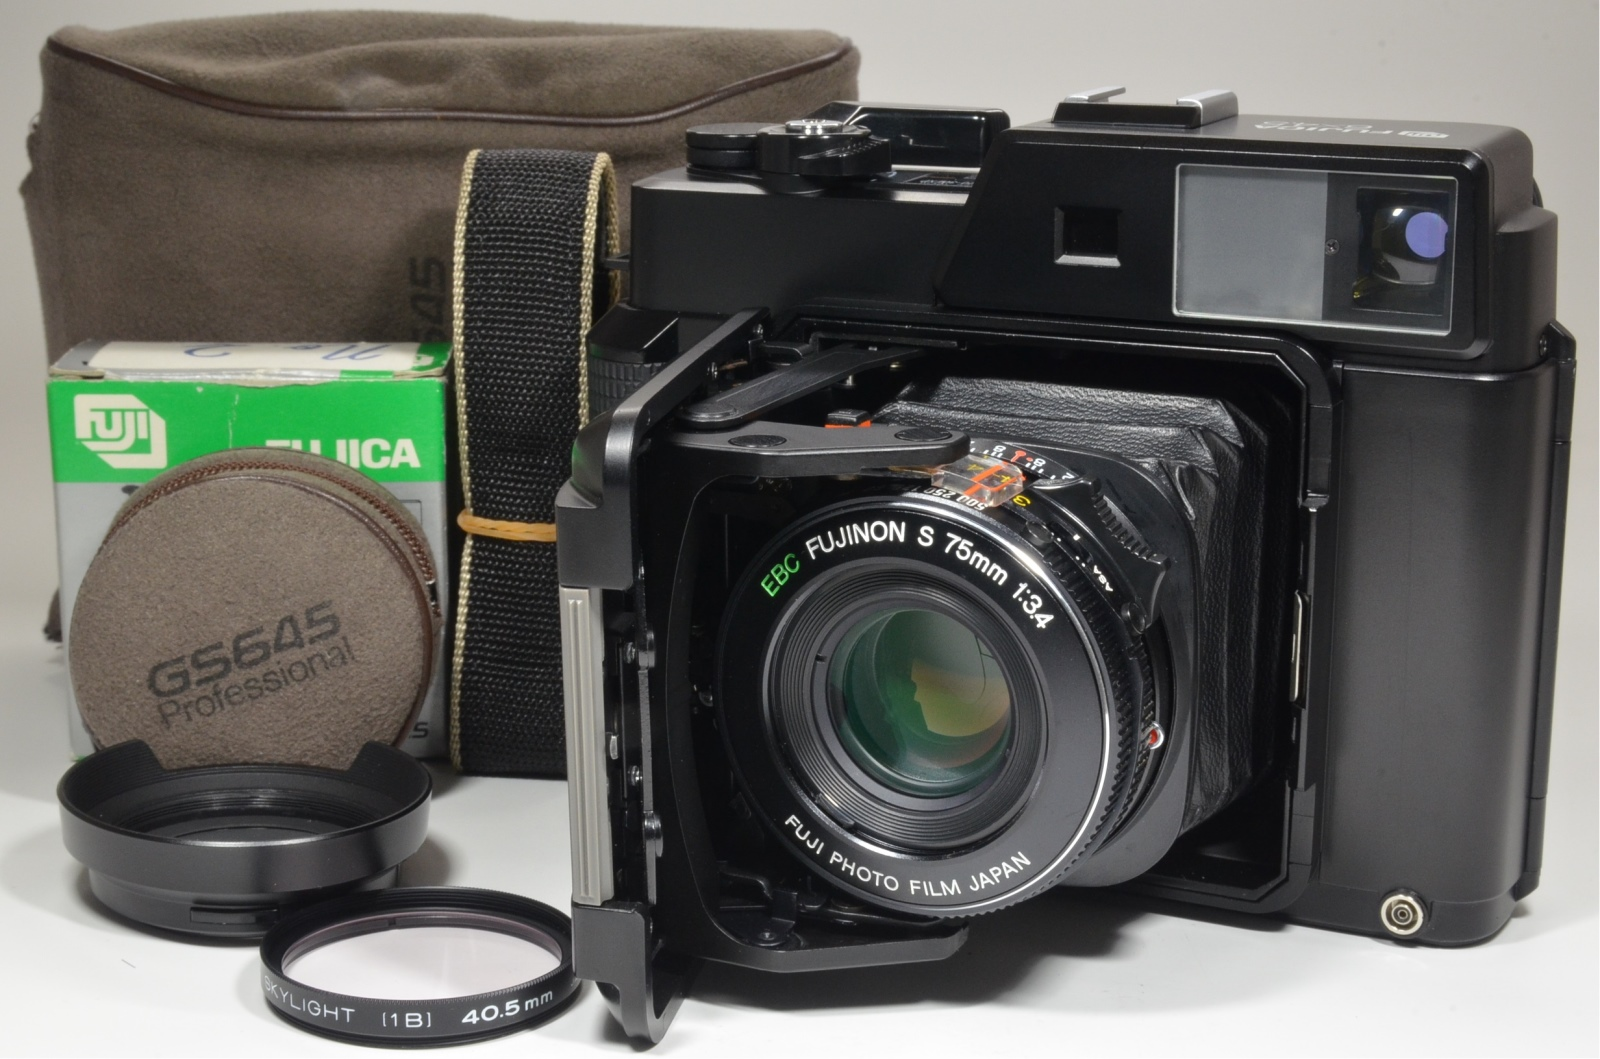 fujifilm fujica gs645 75mm f3.4 with lens hood and filter